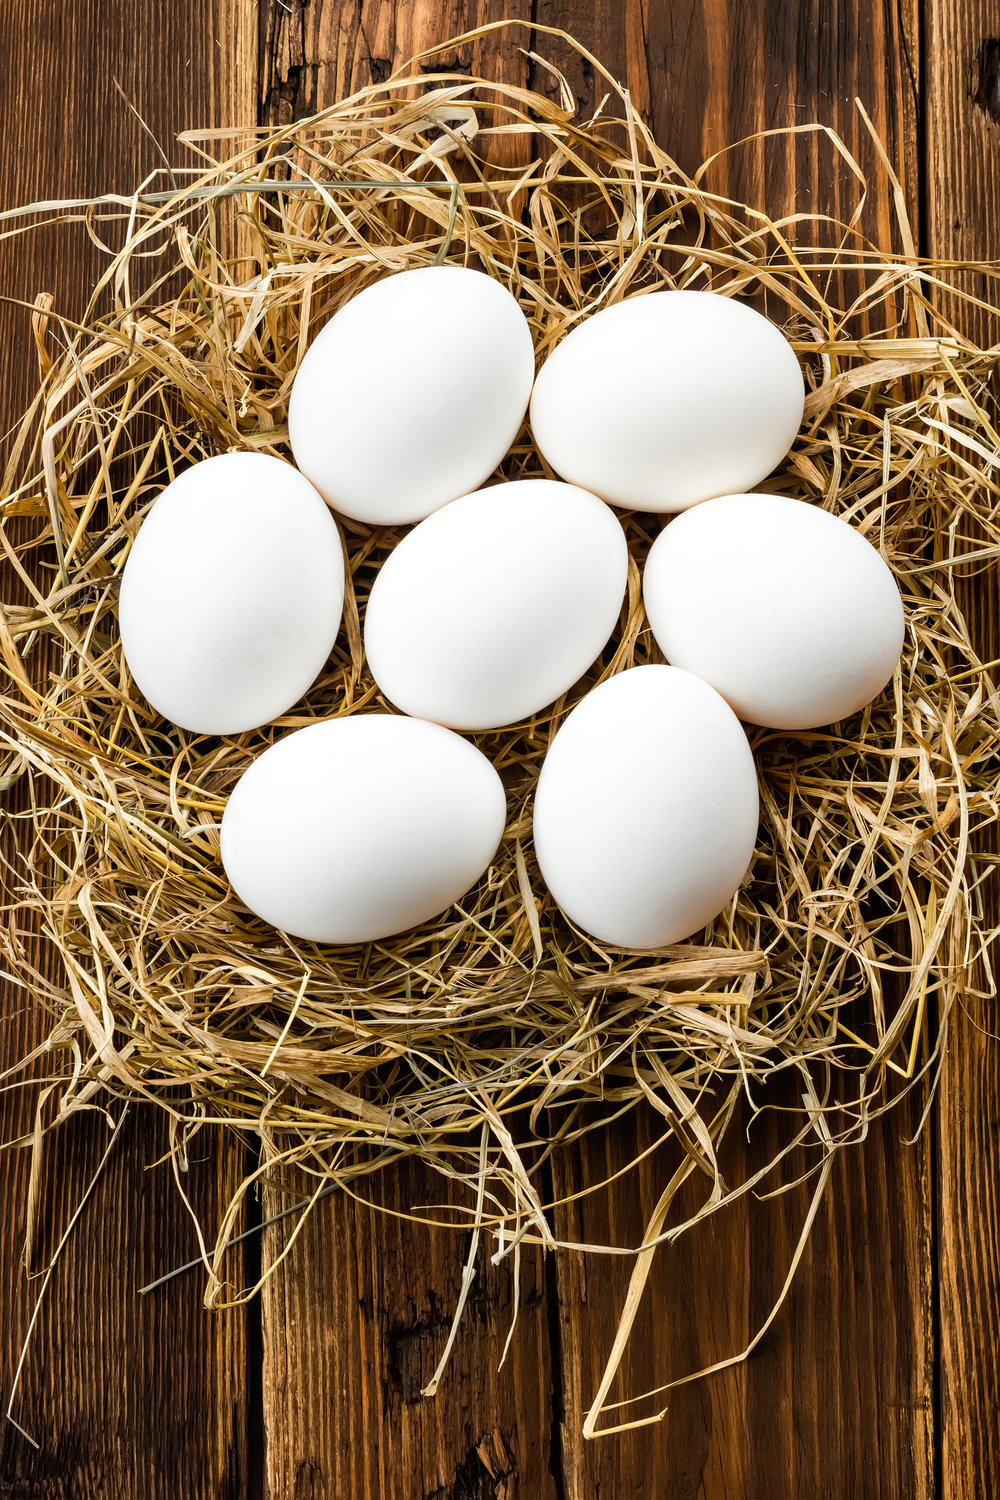 You can improve your egg health during a 3-month window before ovulation. You have options.